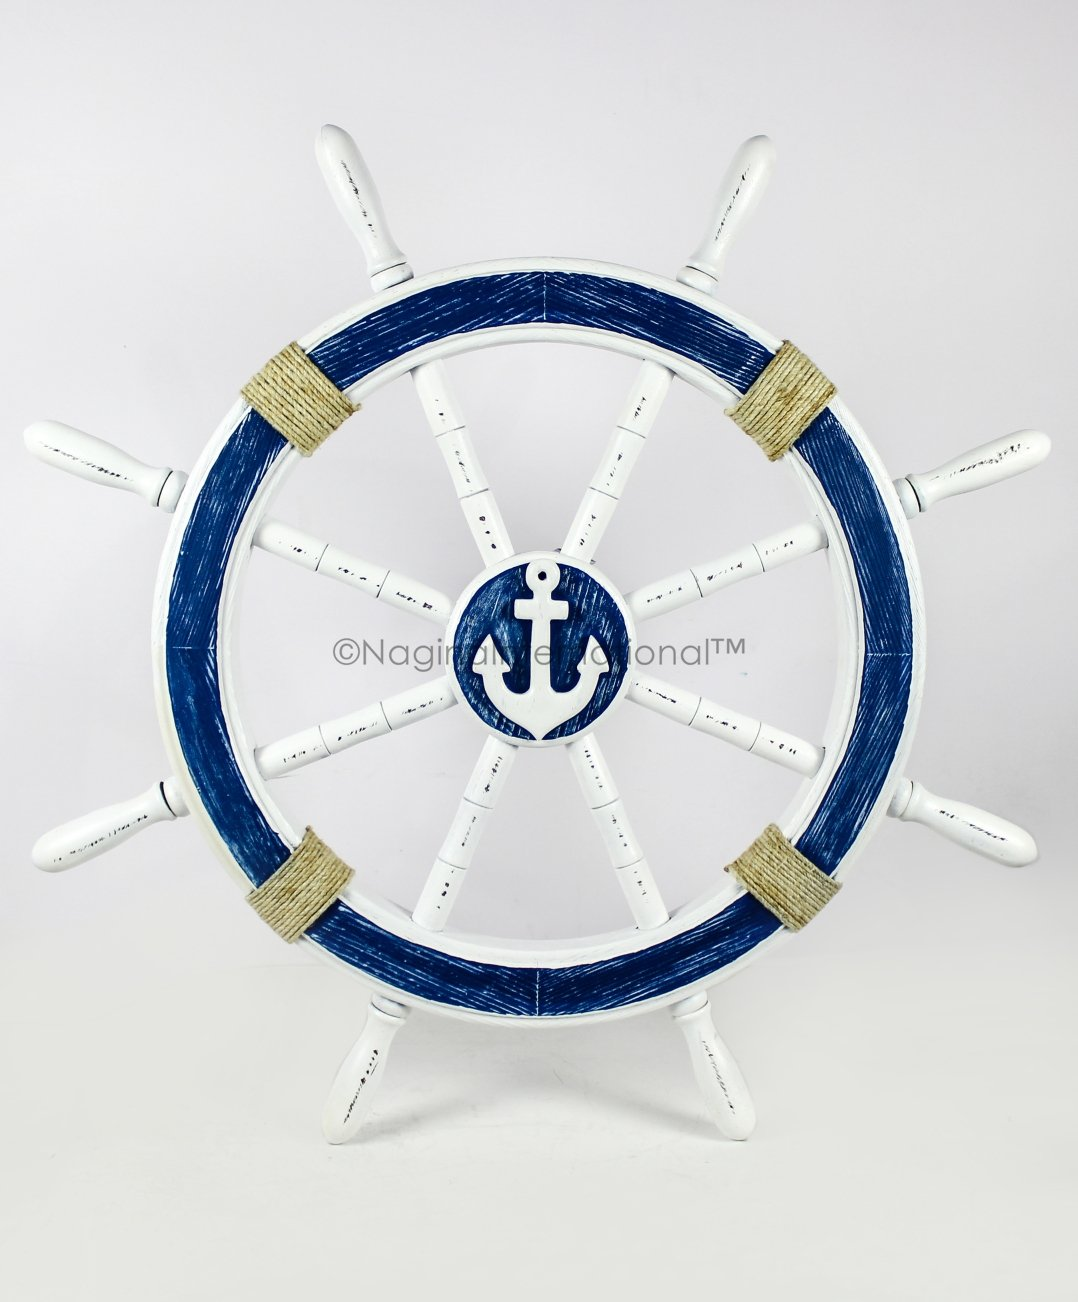 Nagina International Nautical Decorative White Blue Premium Ship Wheel with Accentuated Anchor and Rope | Pirate's Wall Decor | Sea Gift (30 inches)